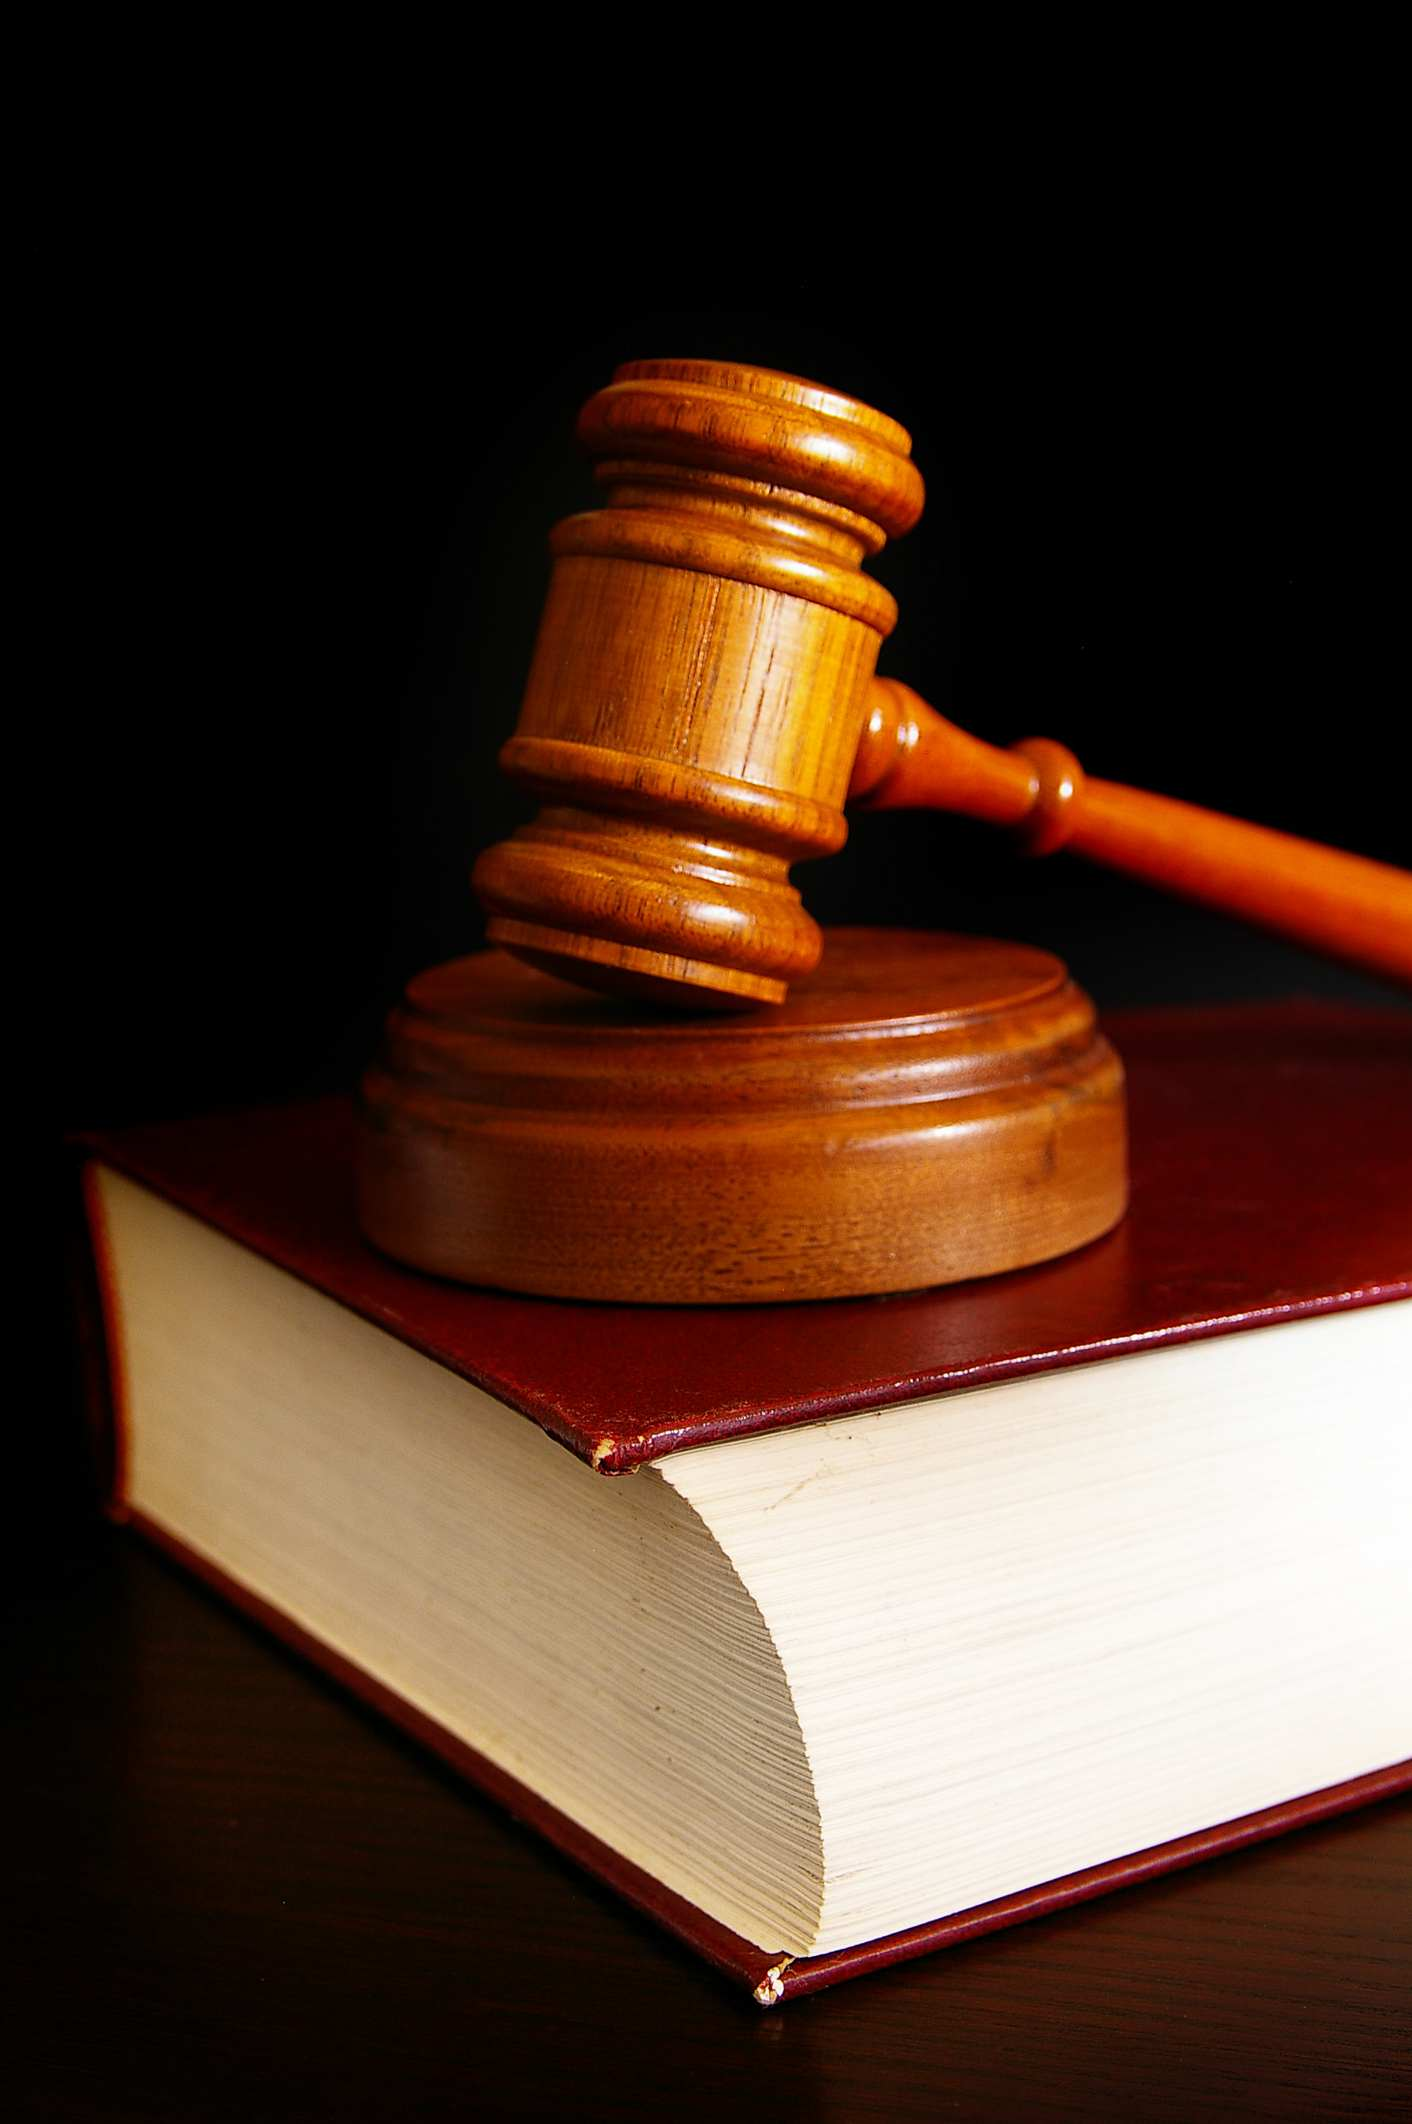 Lawsuits, Lawsuits And More Lawsuits; This Time, Apple Price Fixing E-Books